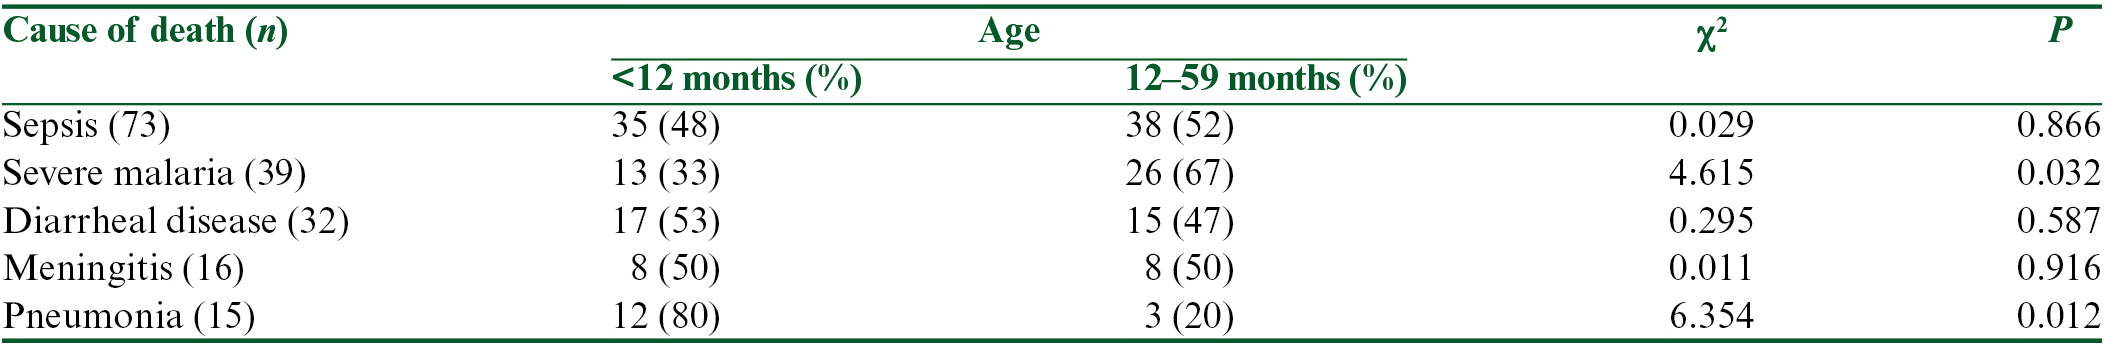 Table 5: Age differences among the common causes of under-five deaths